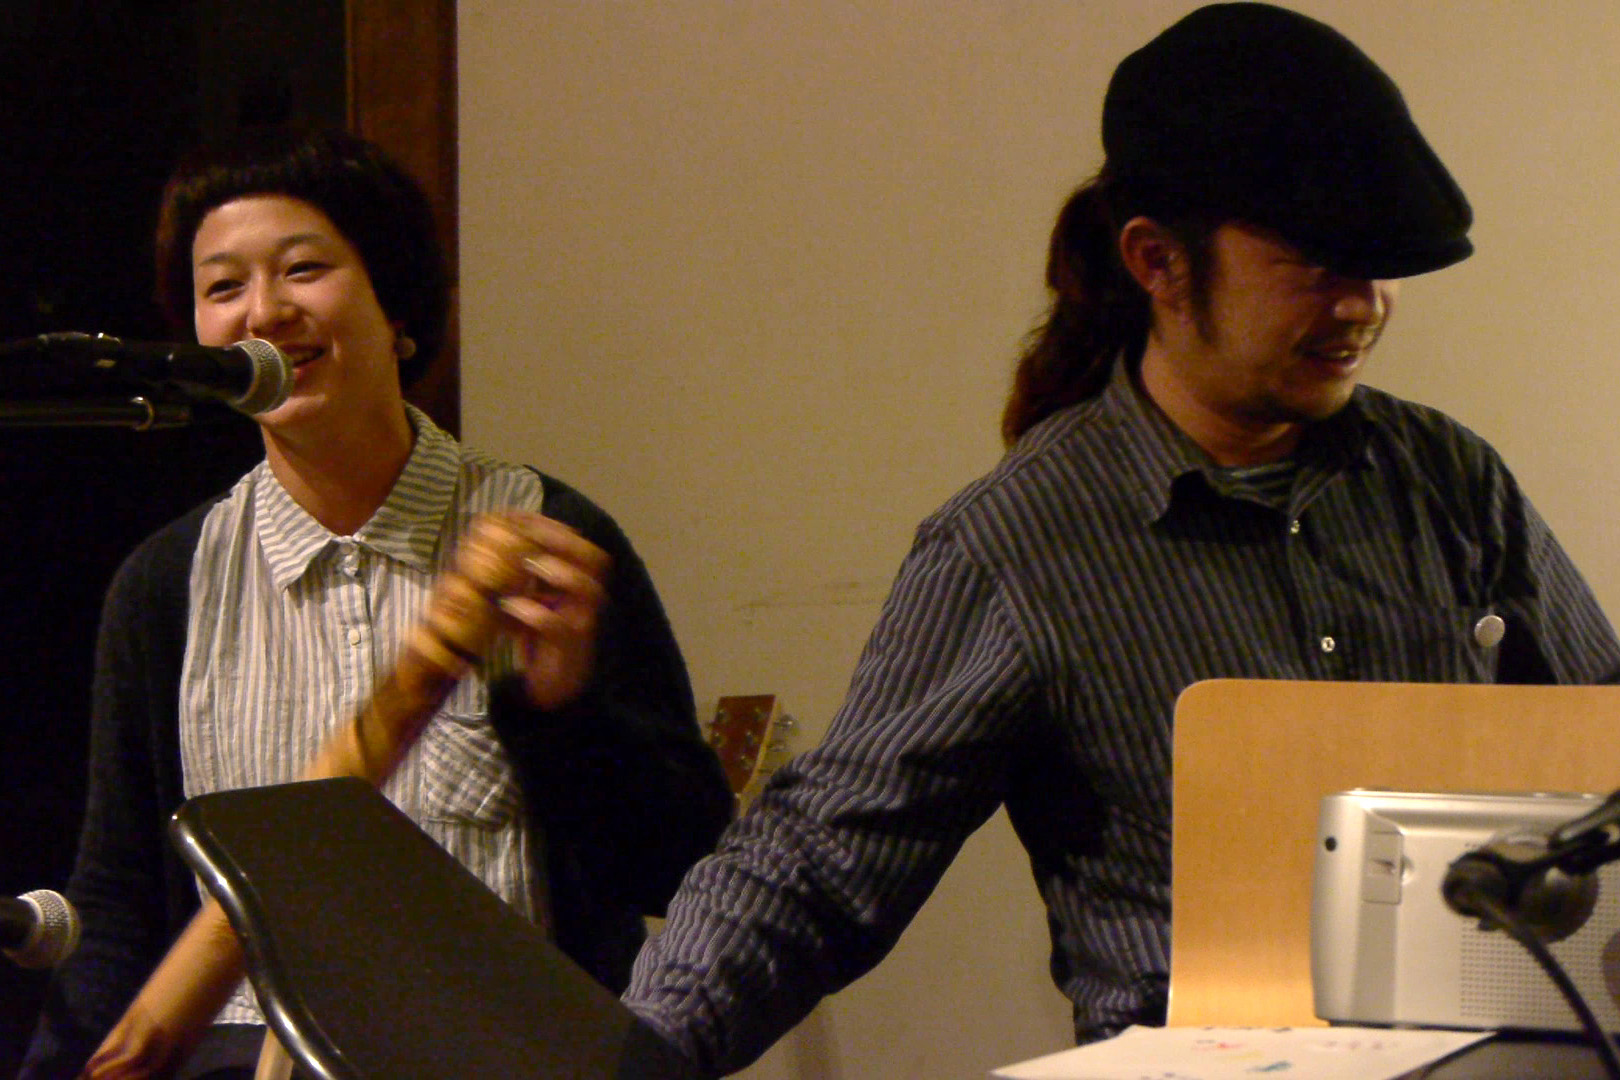 萬人音樂堂Presents レコ発ライブツアー in 沖縄 2012 OKINAWA HARMLESS @ 沖縄 Cafe & Dining Bar THREE_c0000587_19431060.jpg